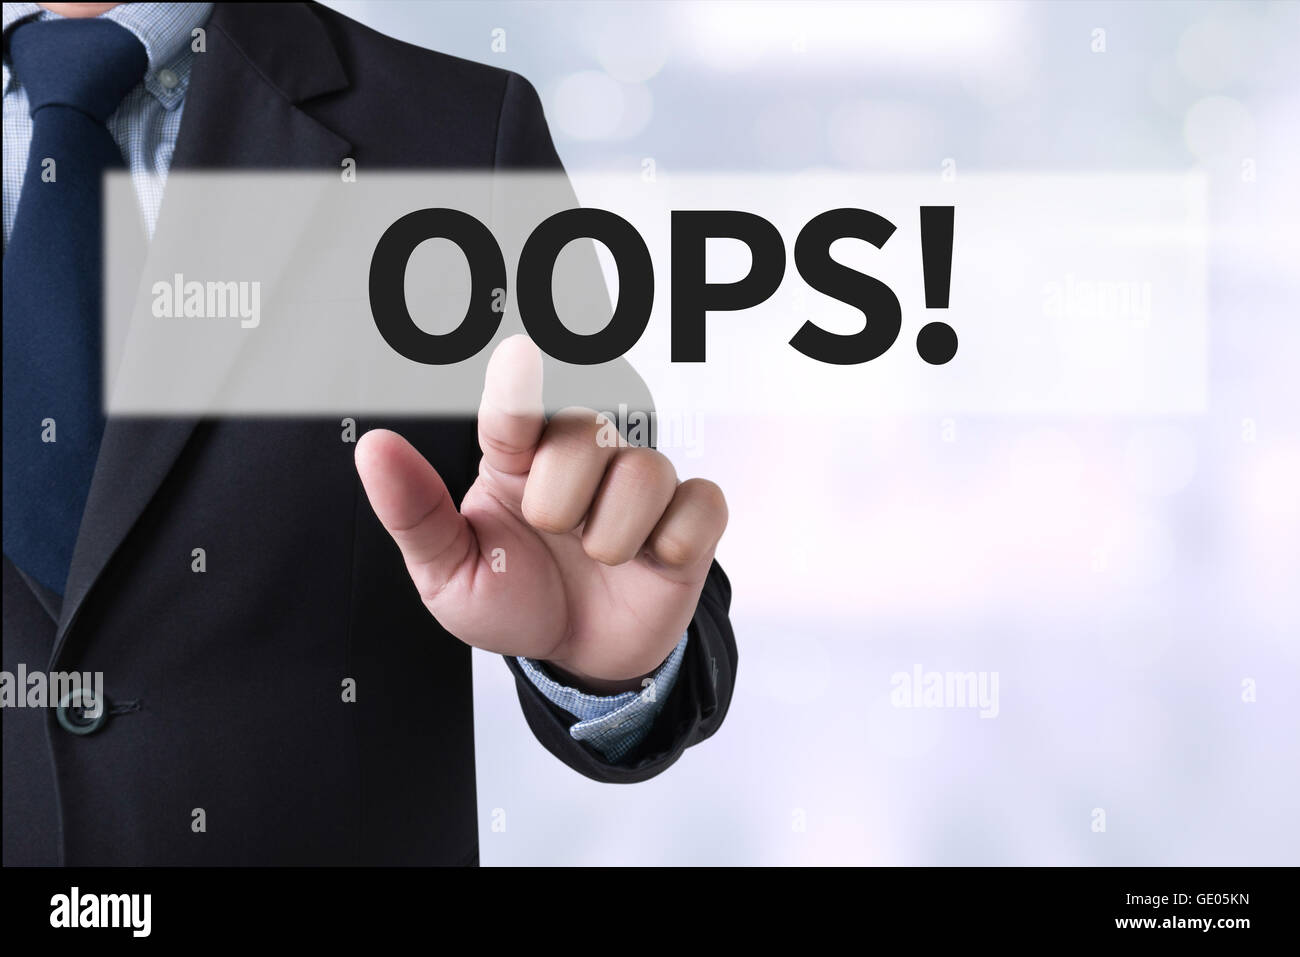 OOPS! Businessman hands touching on virtual screen and blurred city background - Stock Image